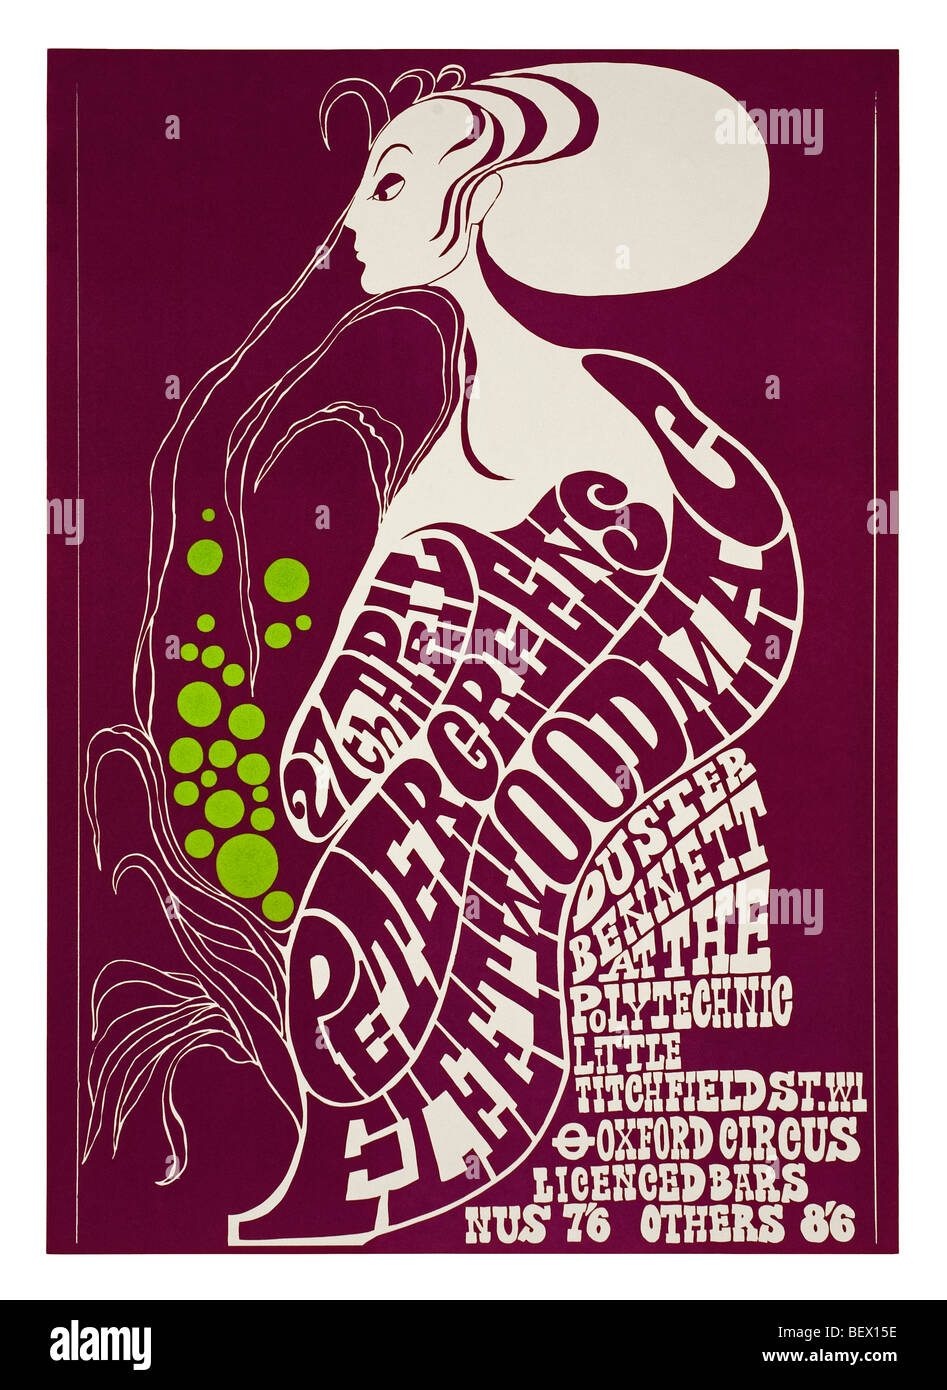 Poster for Peter Green's Fleetwood Mac at the London Polytechnic in 1967 - Stock Image